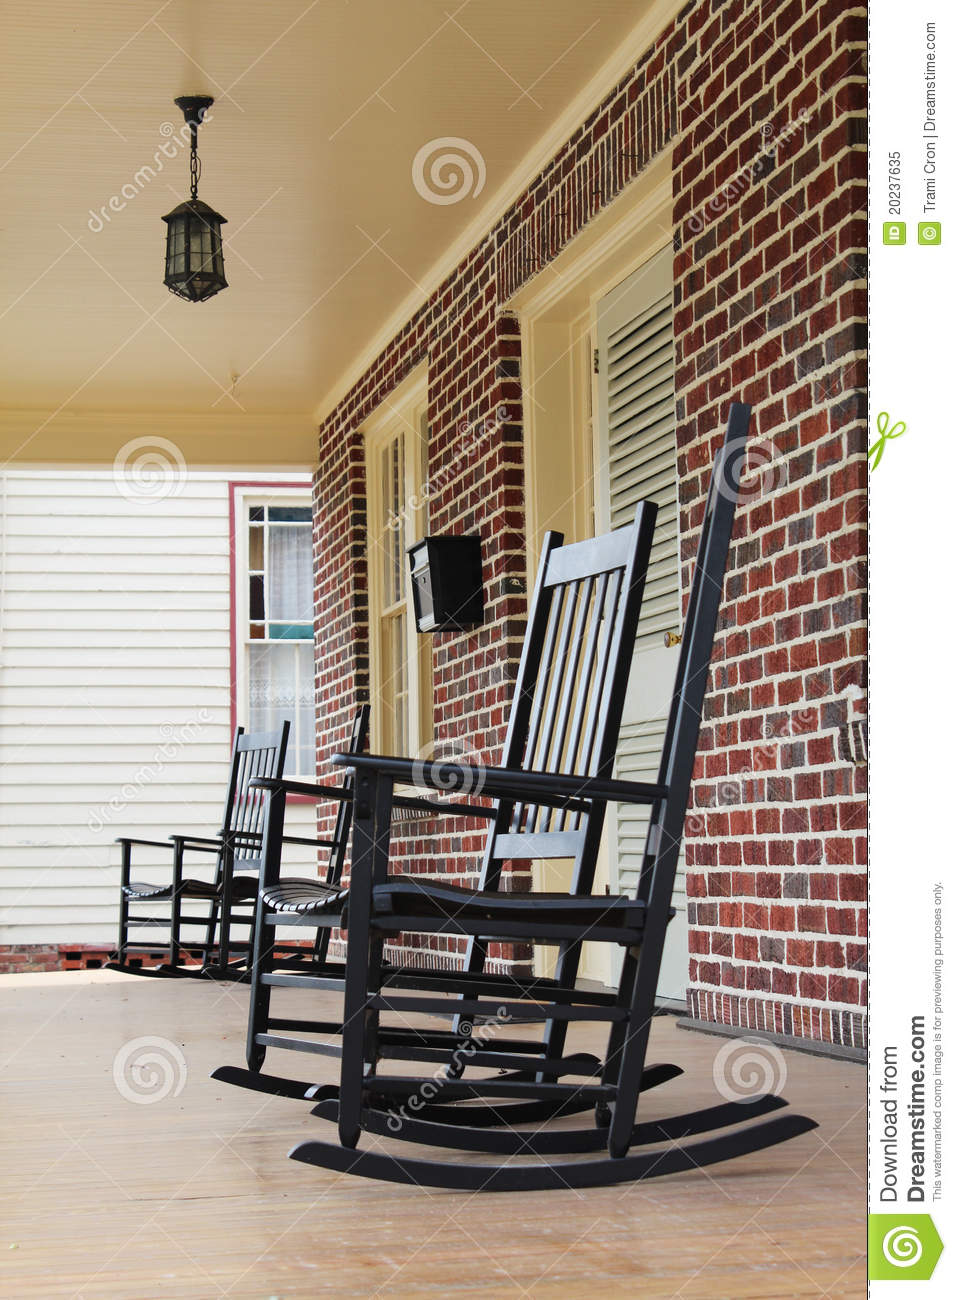 Rocking Chairs On Front Porch In North Carolina Royalty